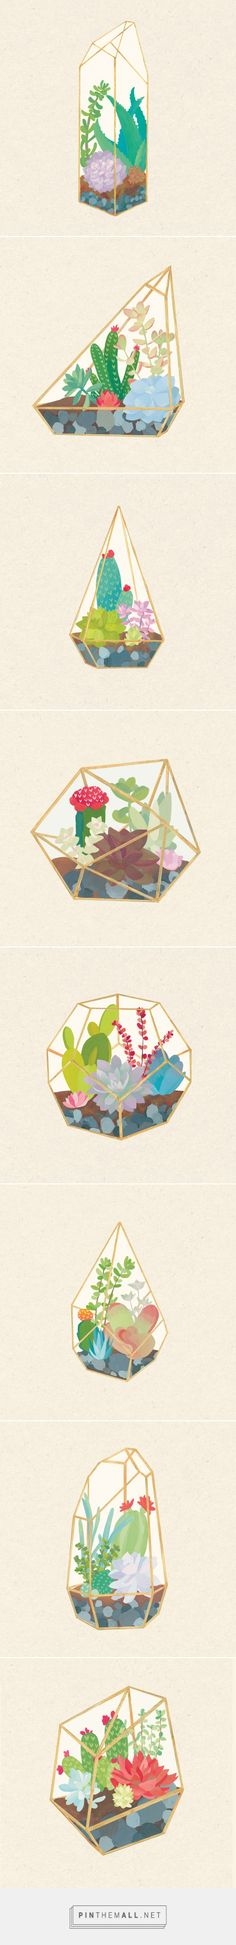 sweetmans: terrarium collection all together :) - created via https://pinthemall.net